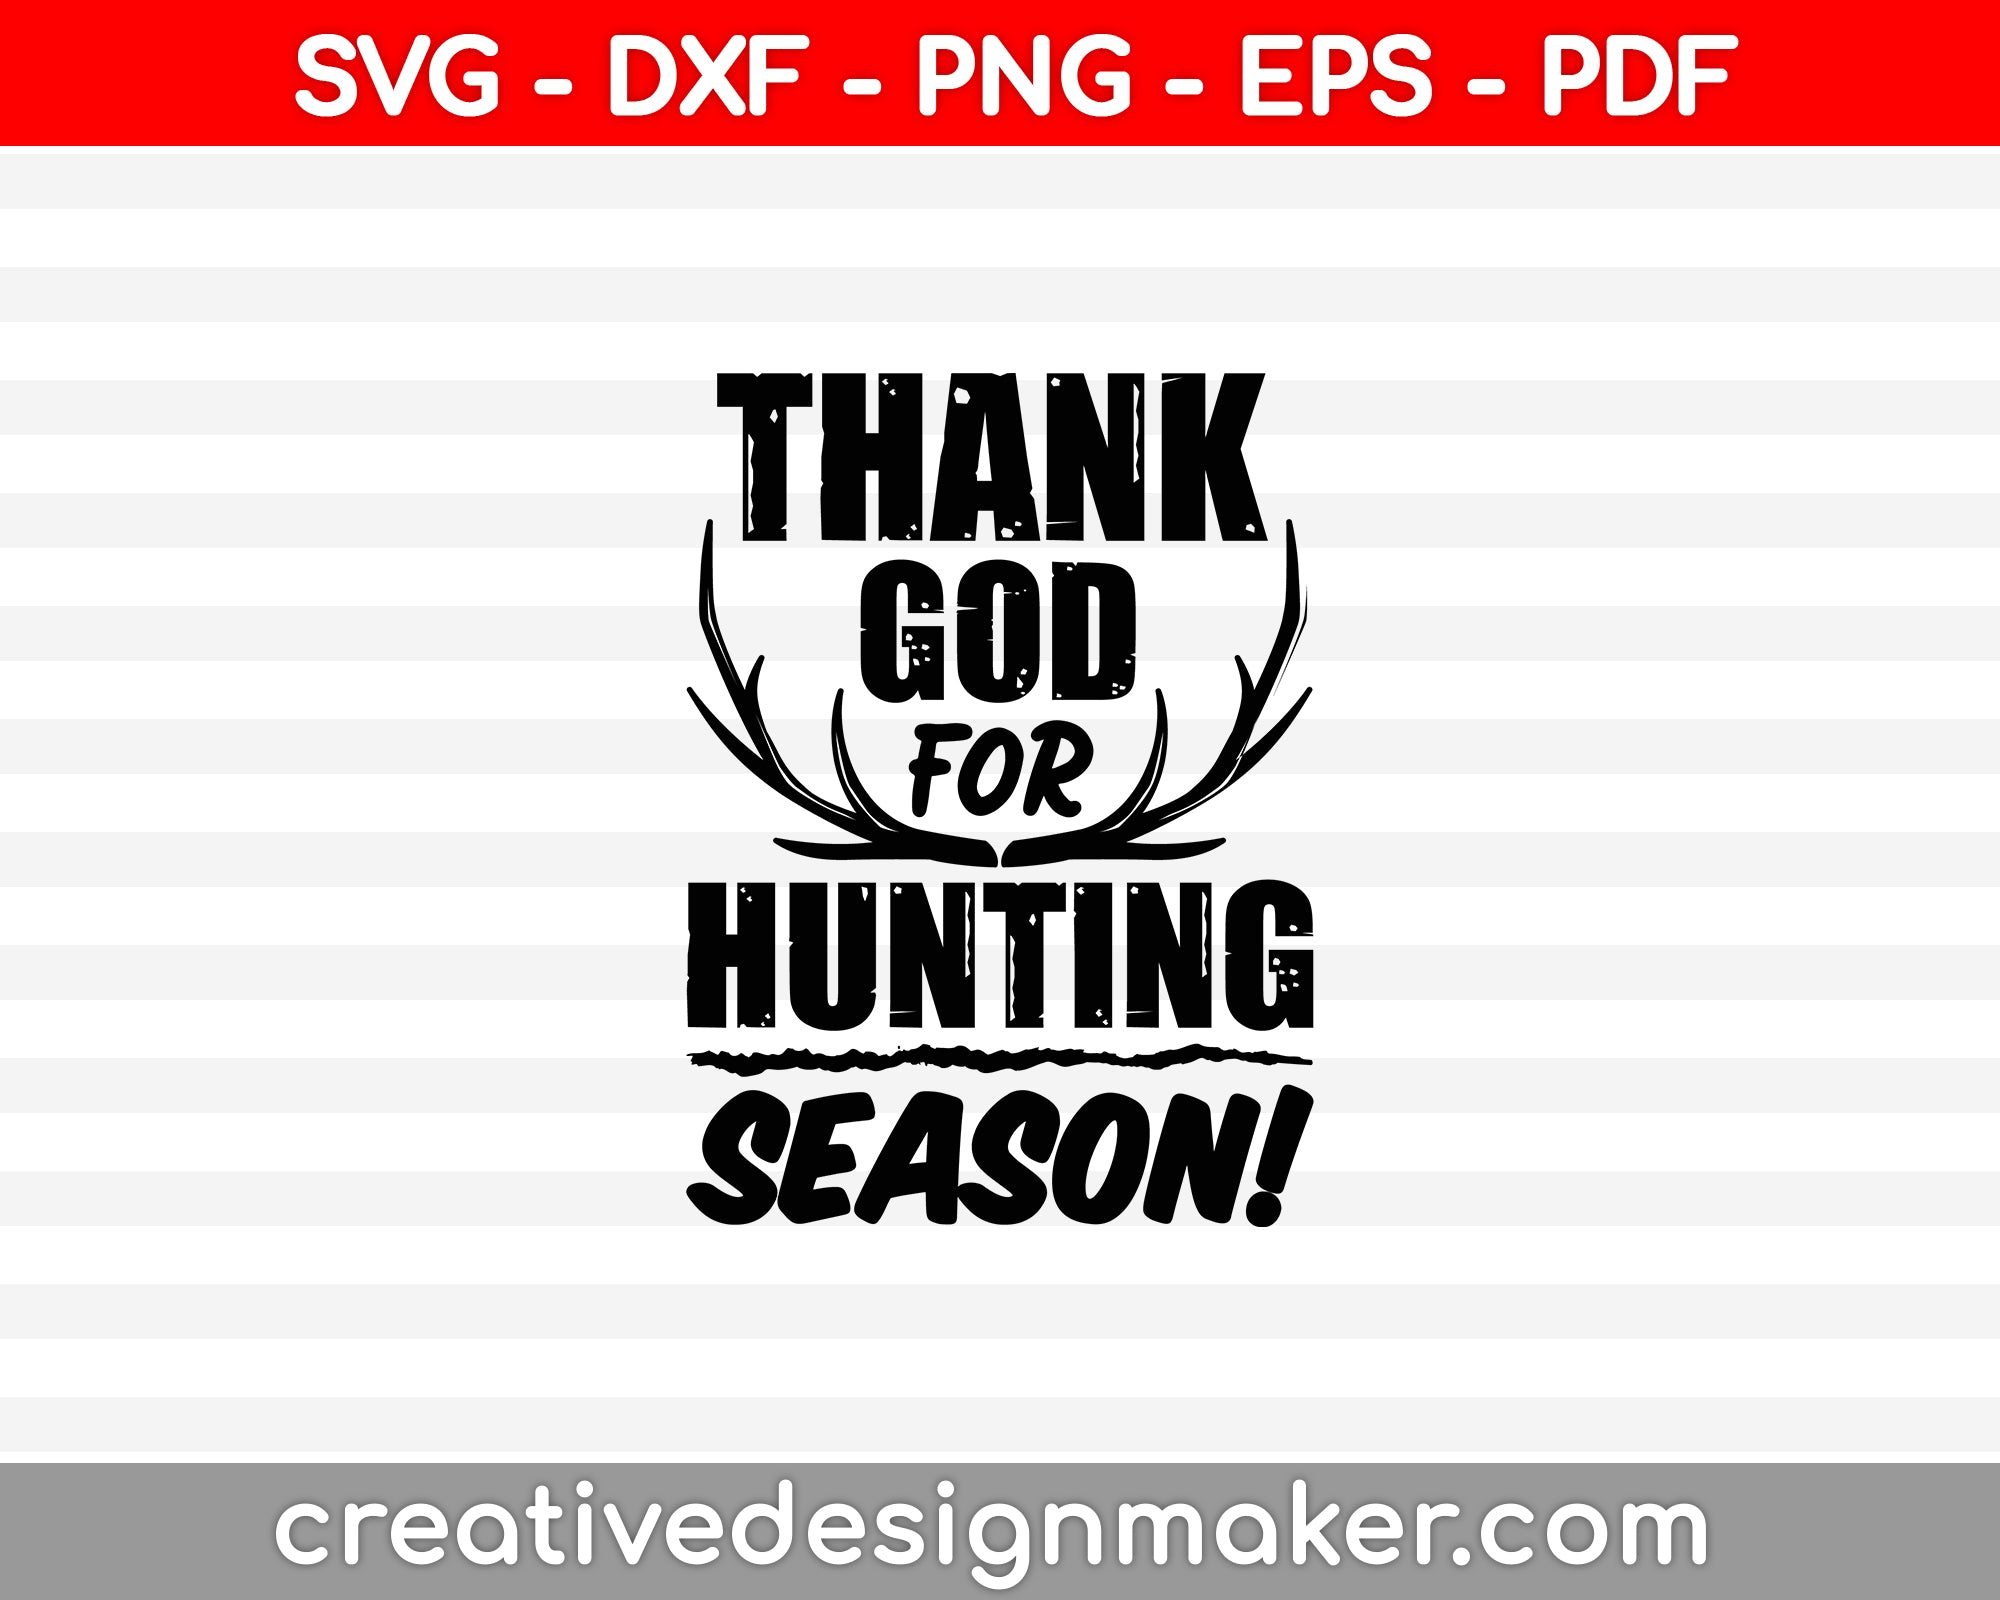 Thank God For Hunting Season SVG PNG Cutting Printable Files